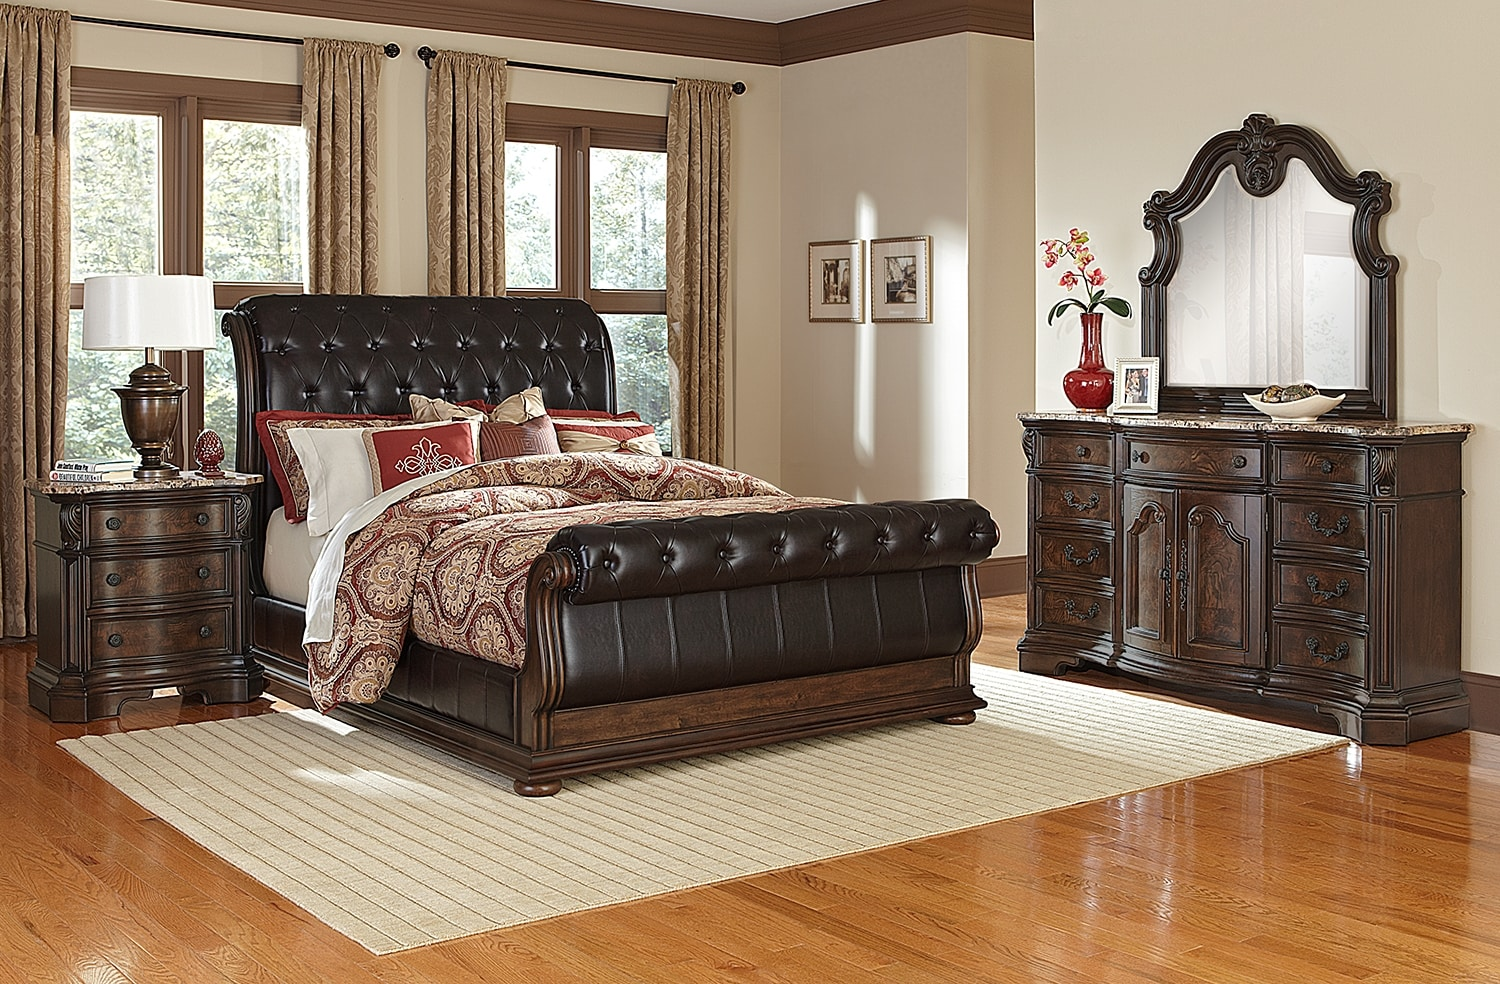 Pulaski Bedroom Furniture Monticello 6 Piece King Sleigh Bedroom Set Pecan American